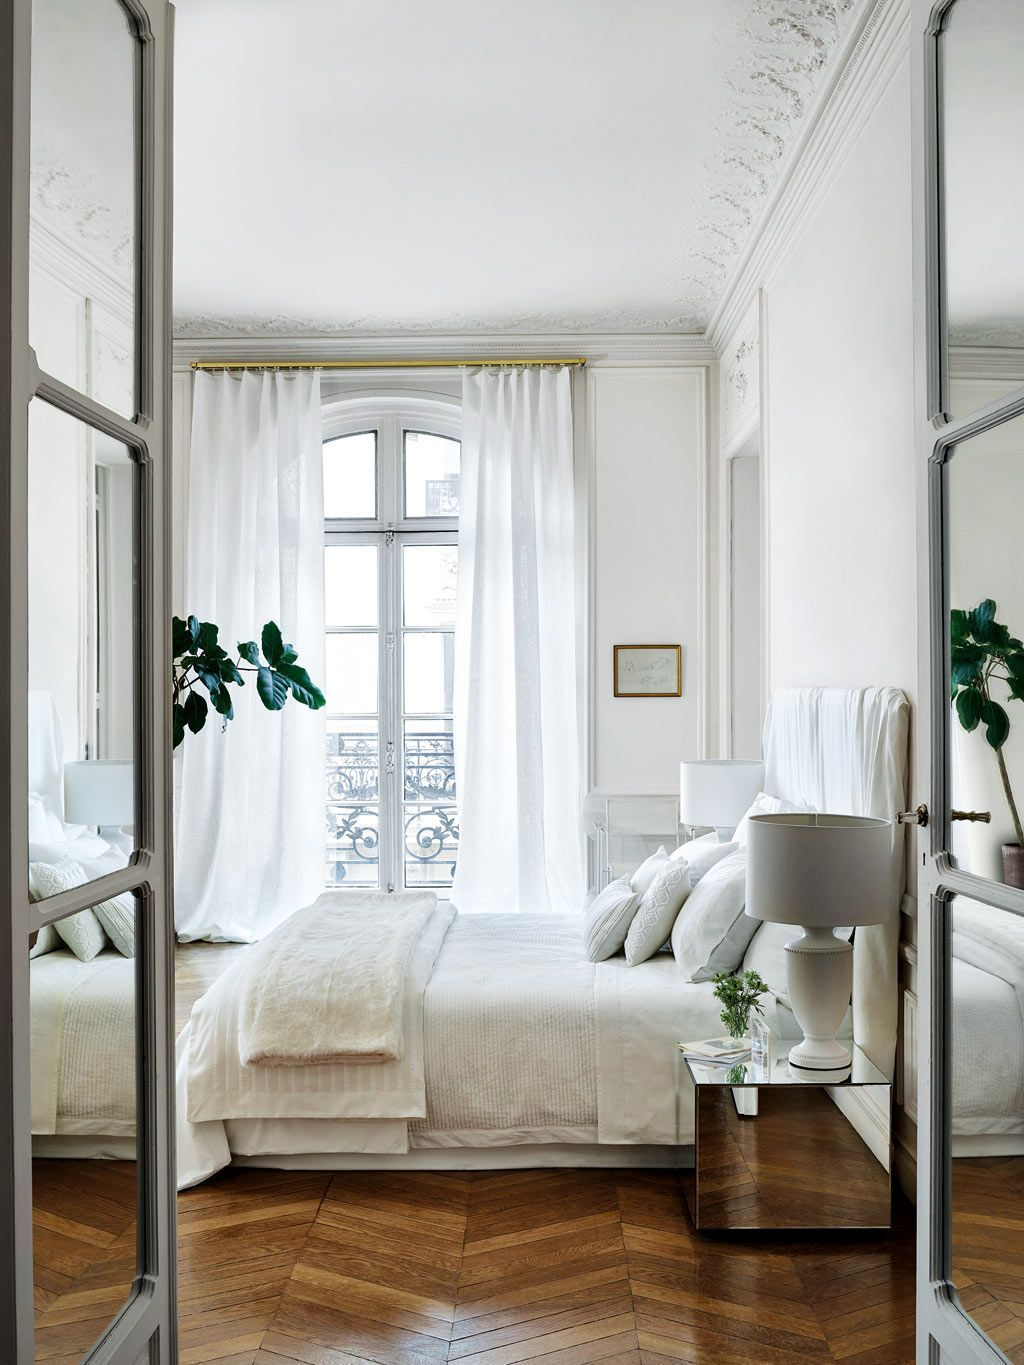 10 Dreamy Parisian Bedrooms  Parisian bedroom decor, Home decor